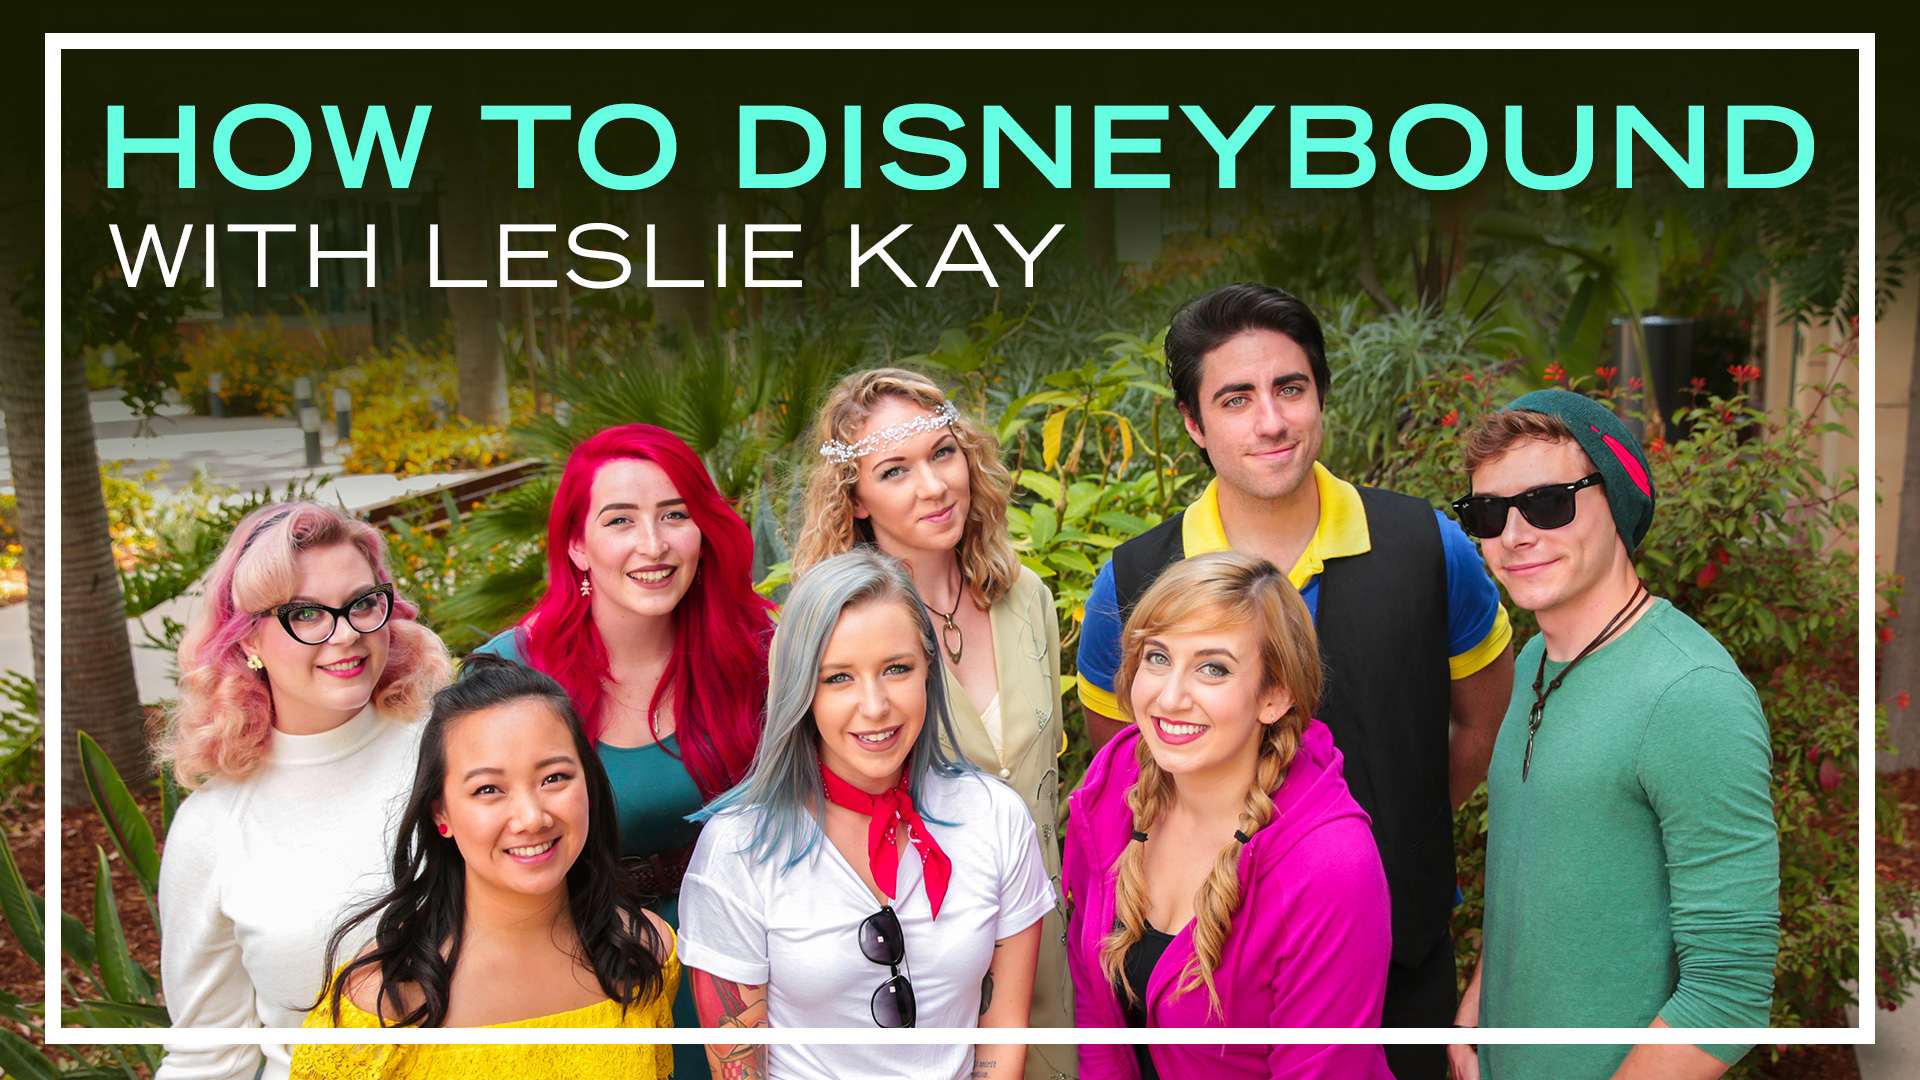 3 DisneyBound Tips with Leslie Kay